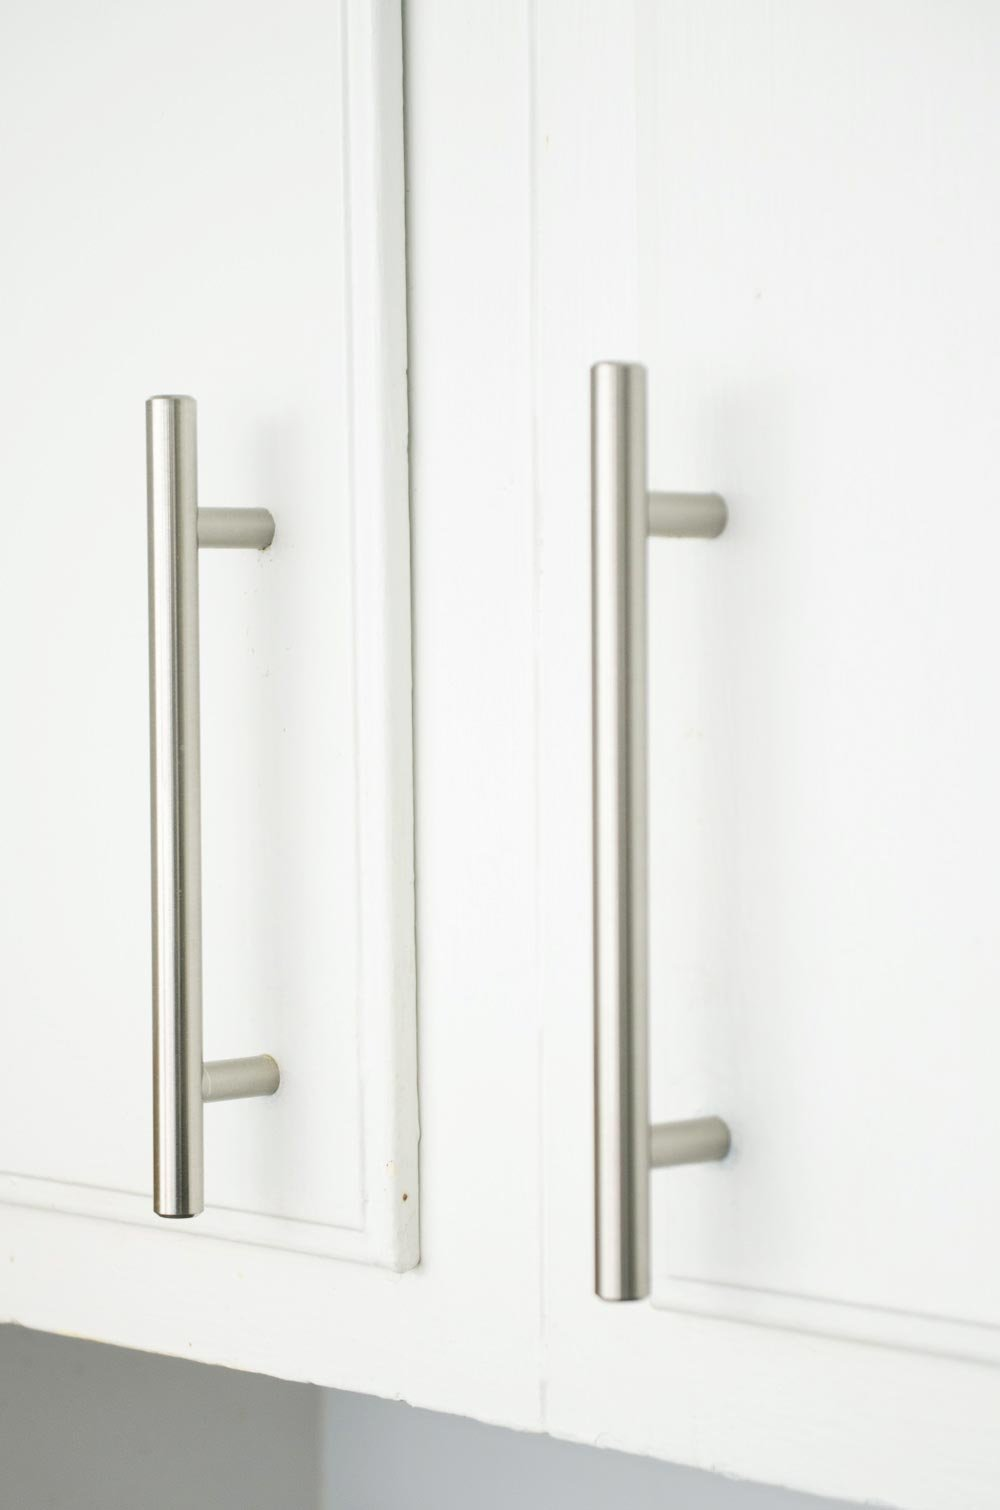 Silver modern cabinet handles in a rental kitchen makeover on @thouswellblog